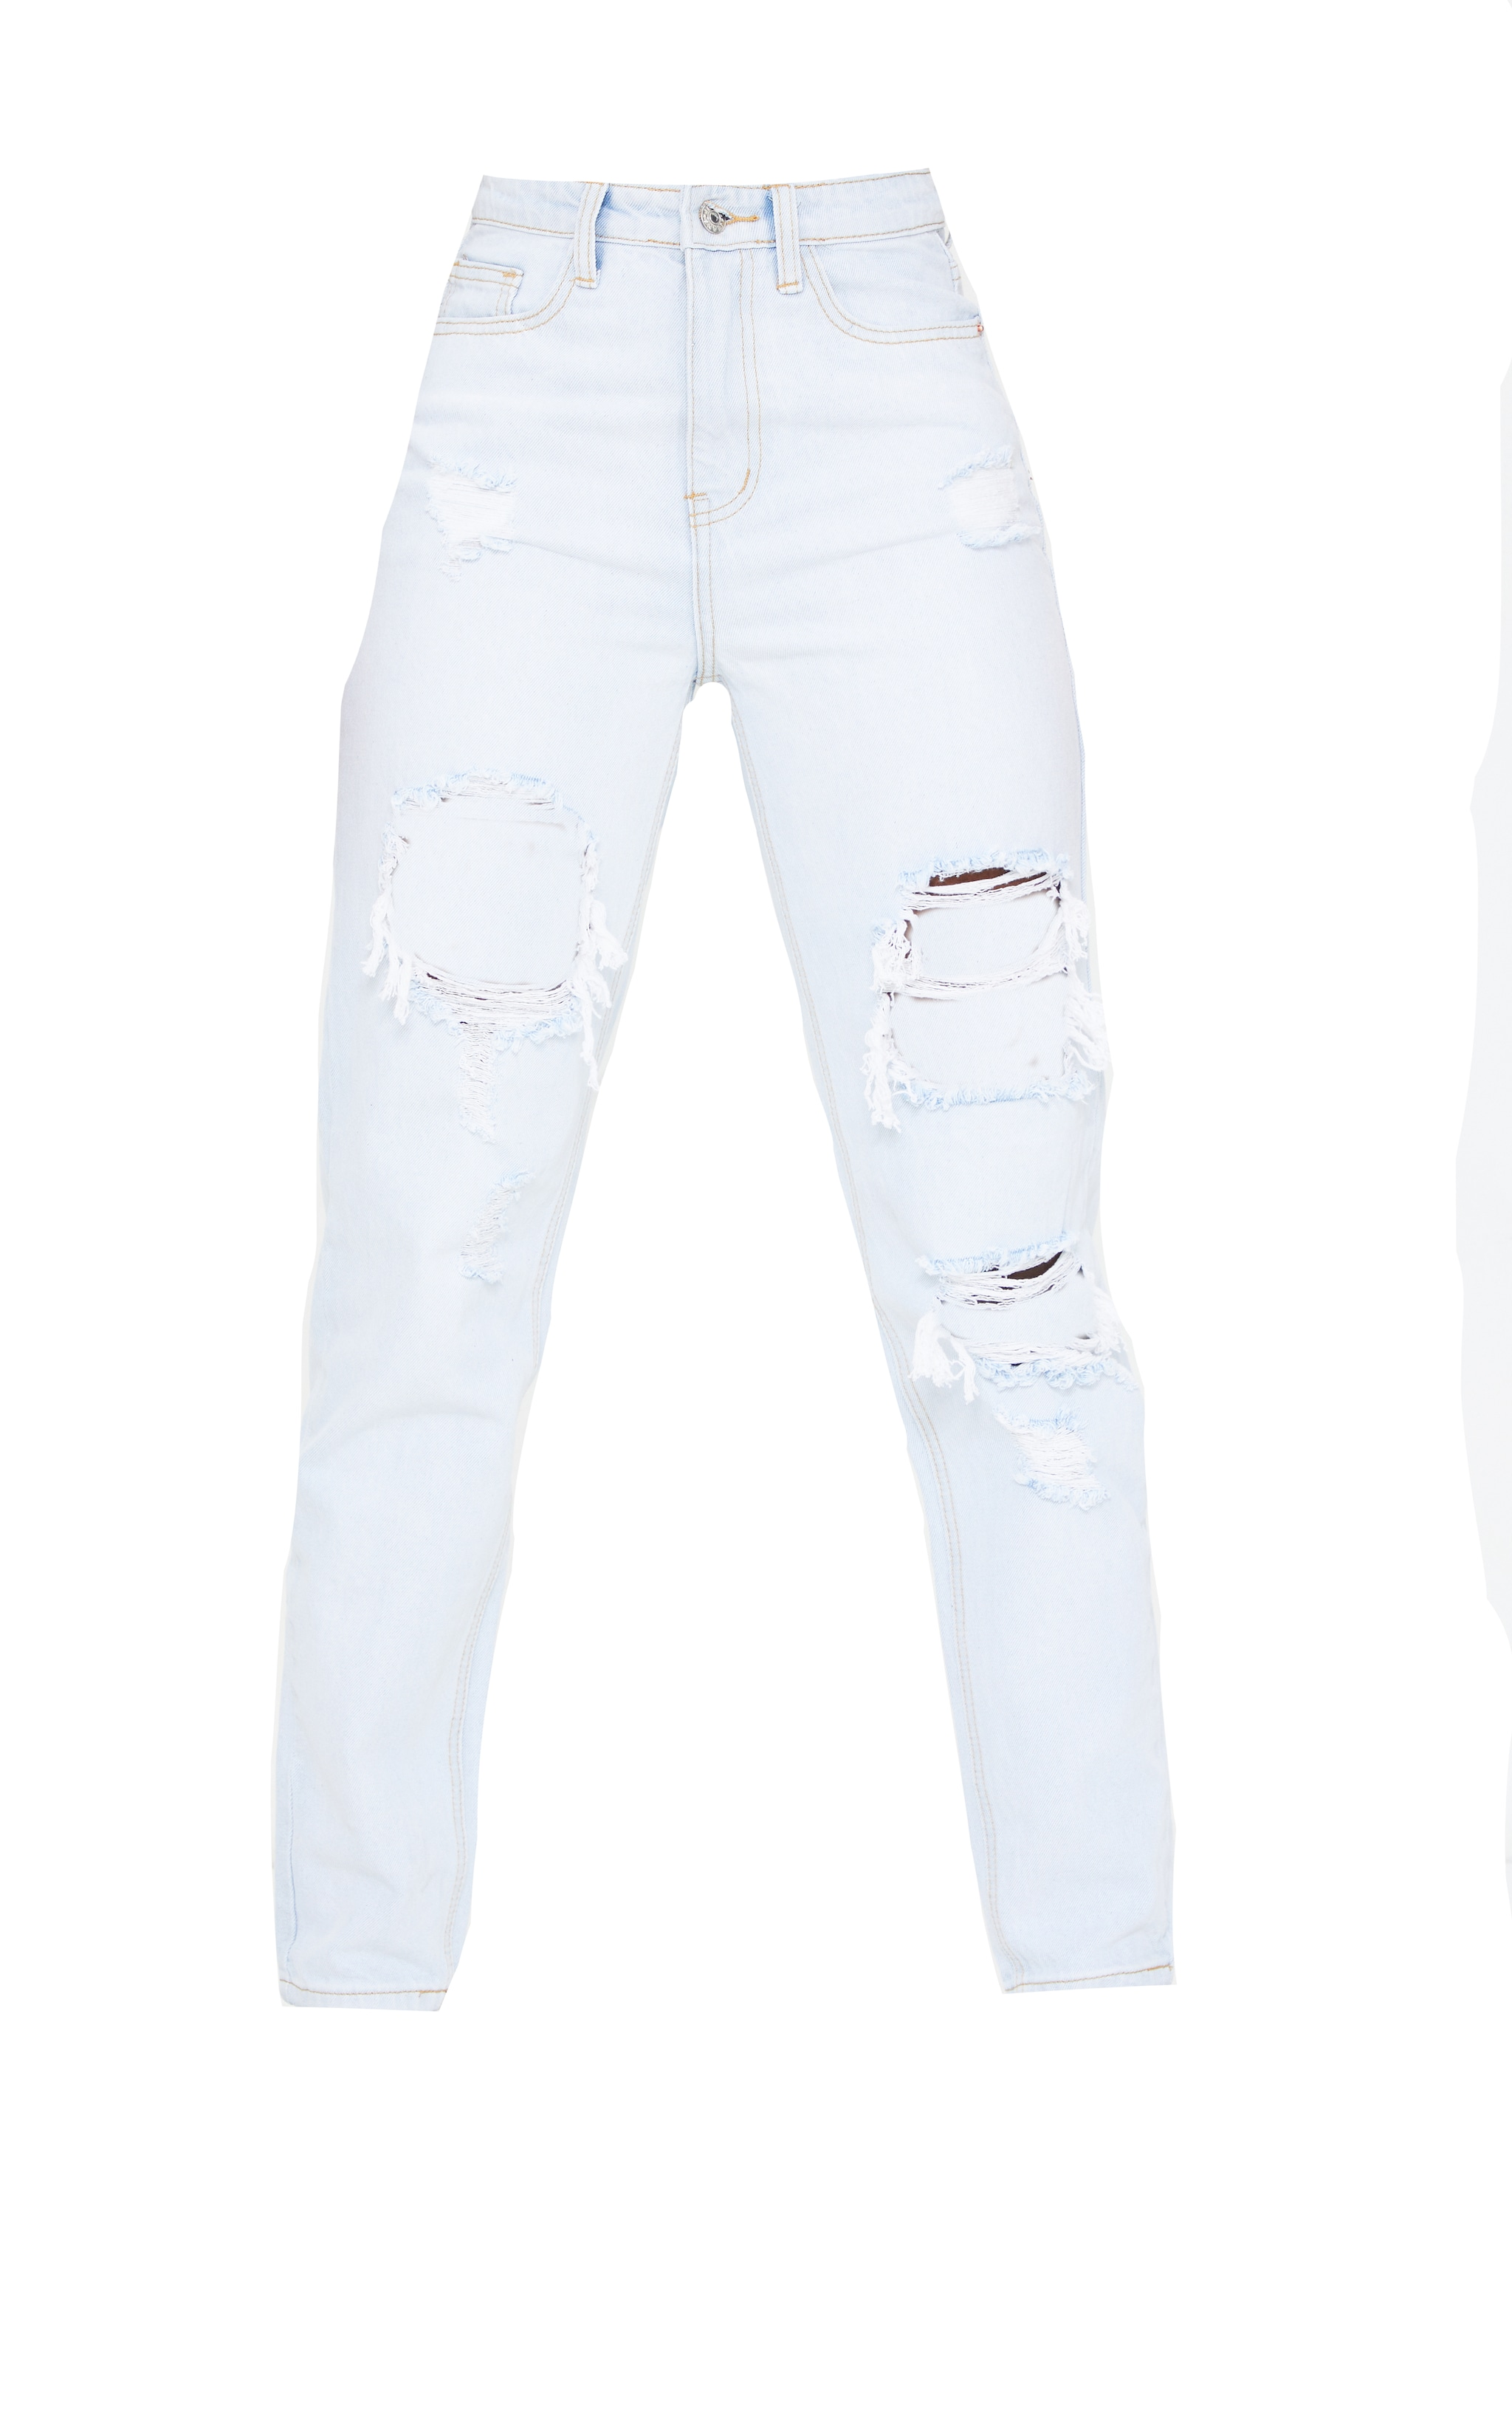 PRETTYLITTLETHING Tall Bleach Wash Distressed Mom Jean 5